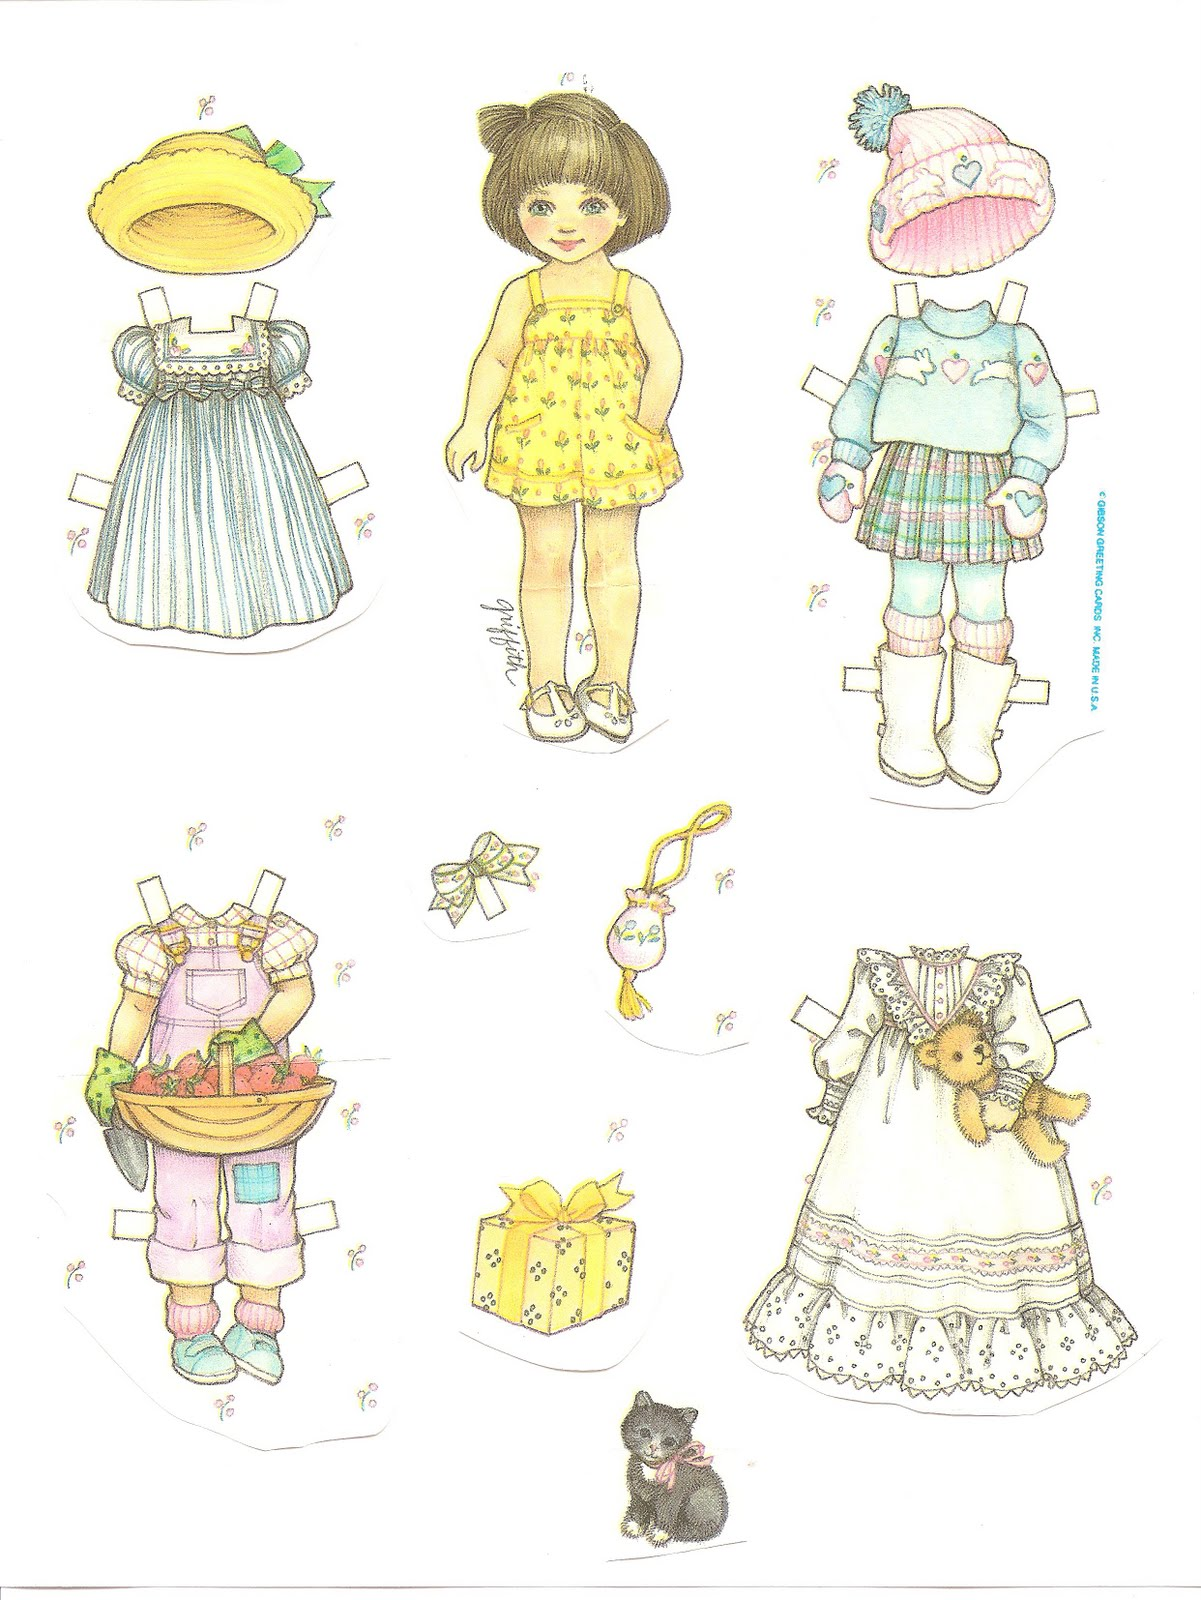 Mostly Paper Dolls: Paper Dolls from Birthday Gift Wrapping Paper